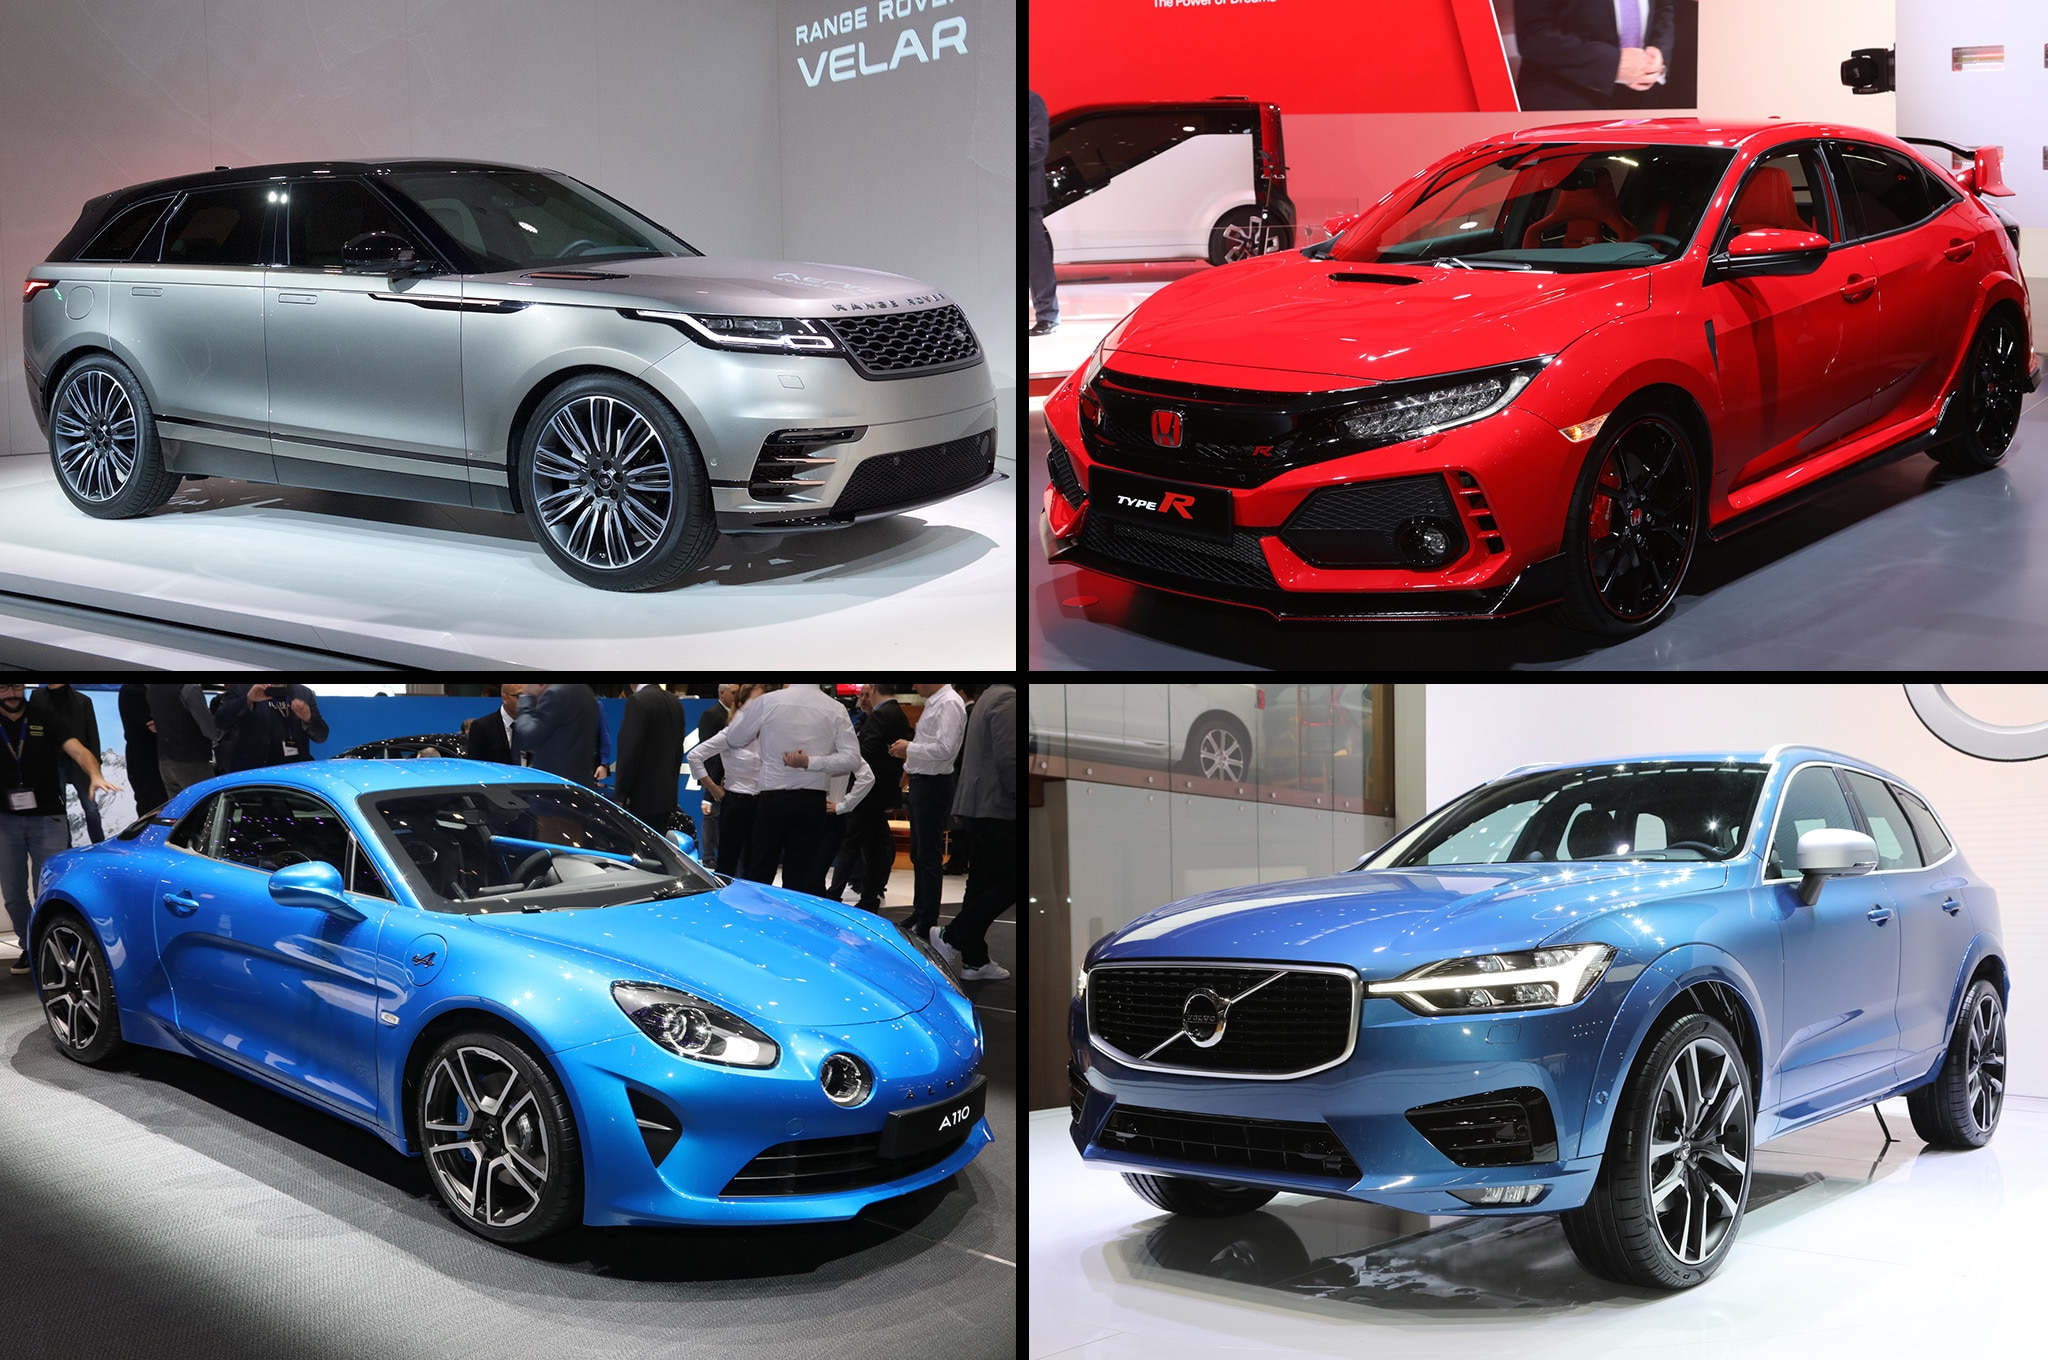 2017 Geneva Motor Show Favorites Graphic